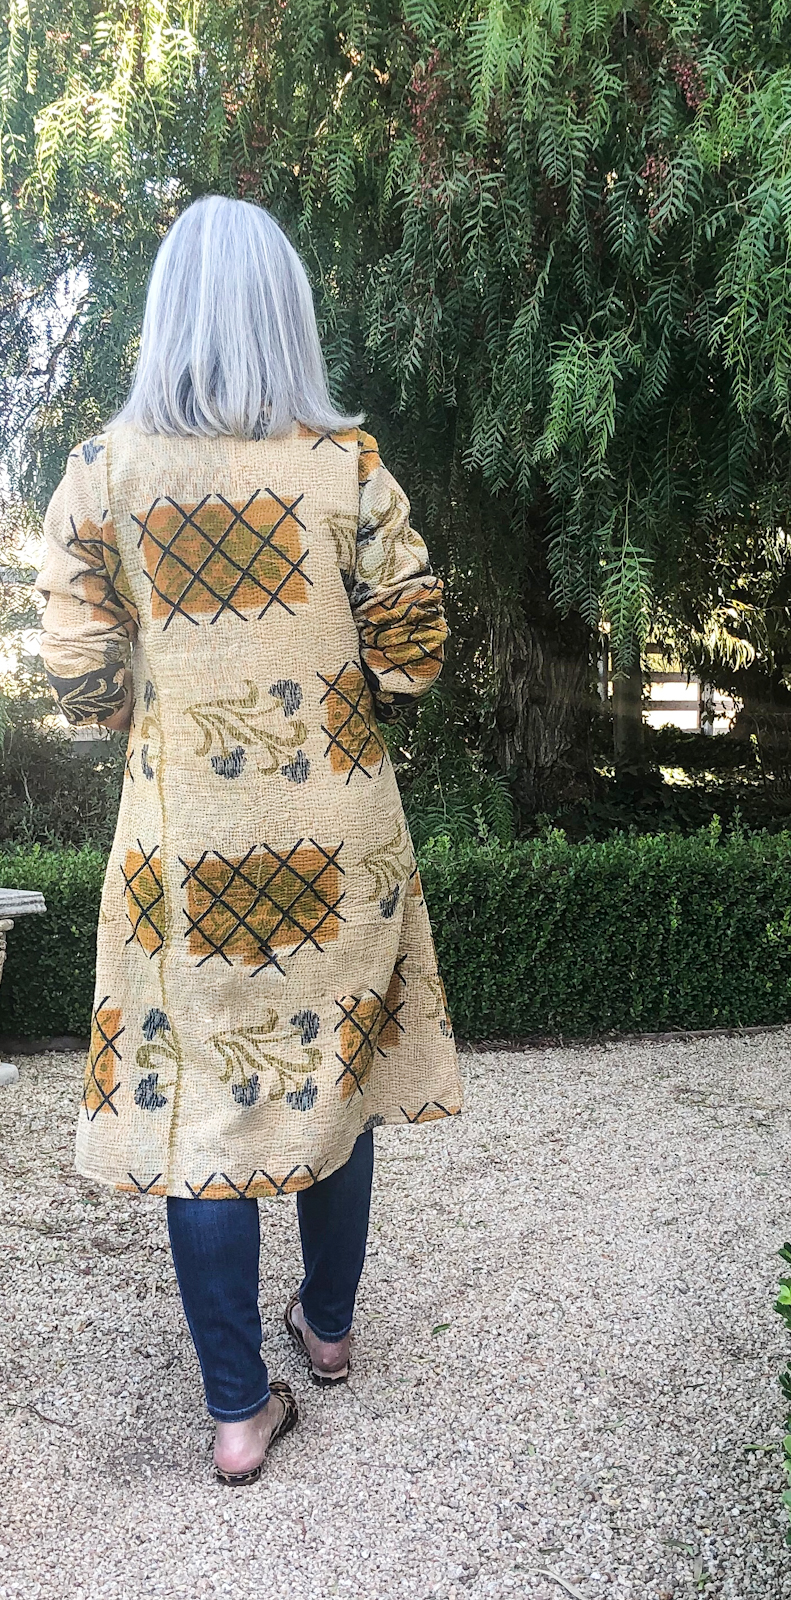 over 50 fashion blogger cindy hattersley in Kantha Jacket From Back